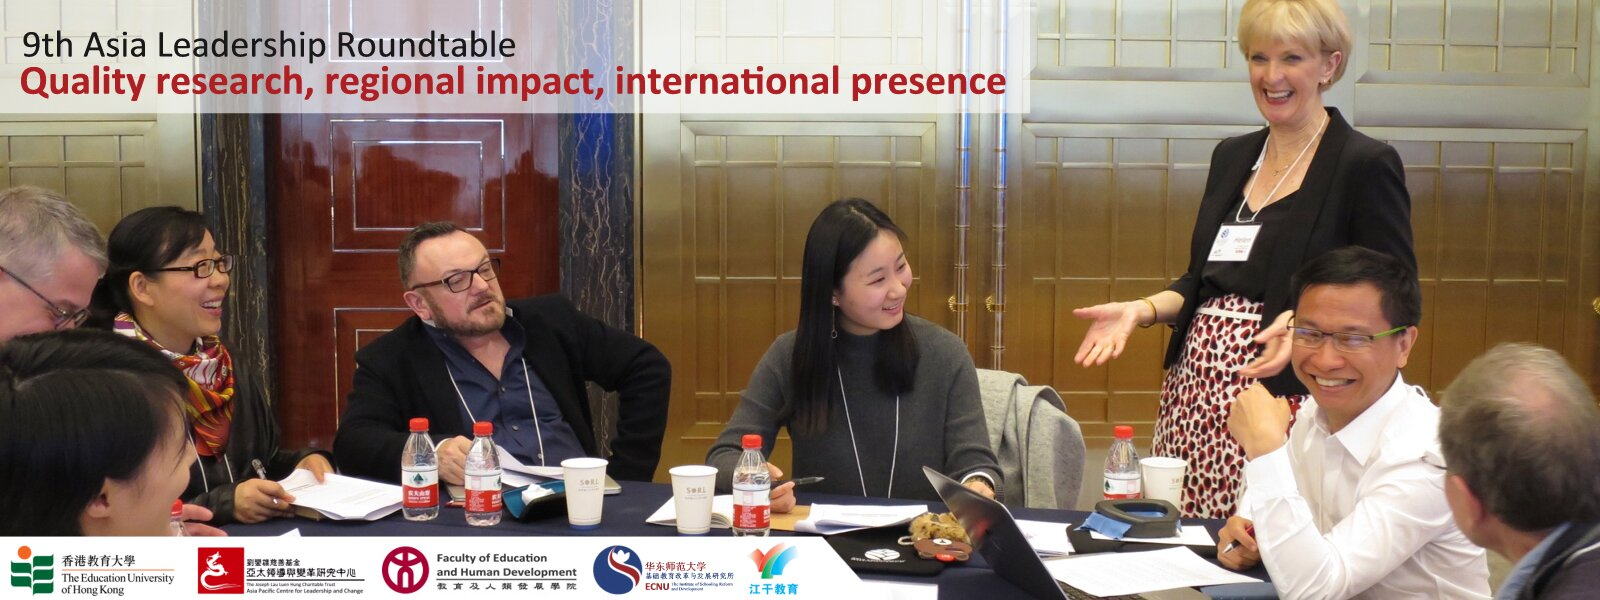 9th Asia Leadership Roundtable: Quality Research, Regional Impact, International Presence